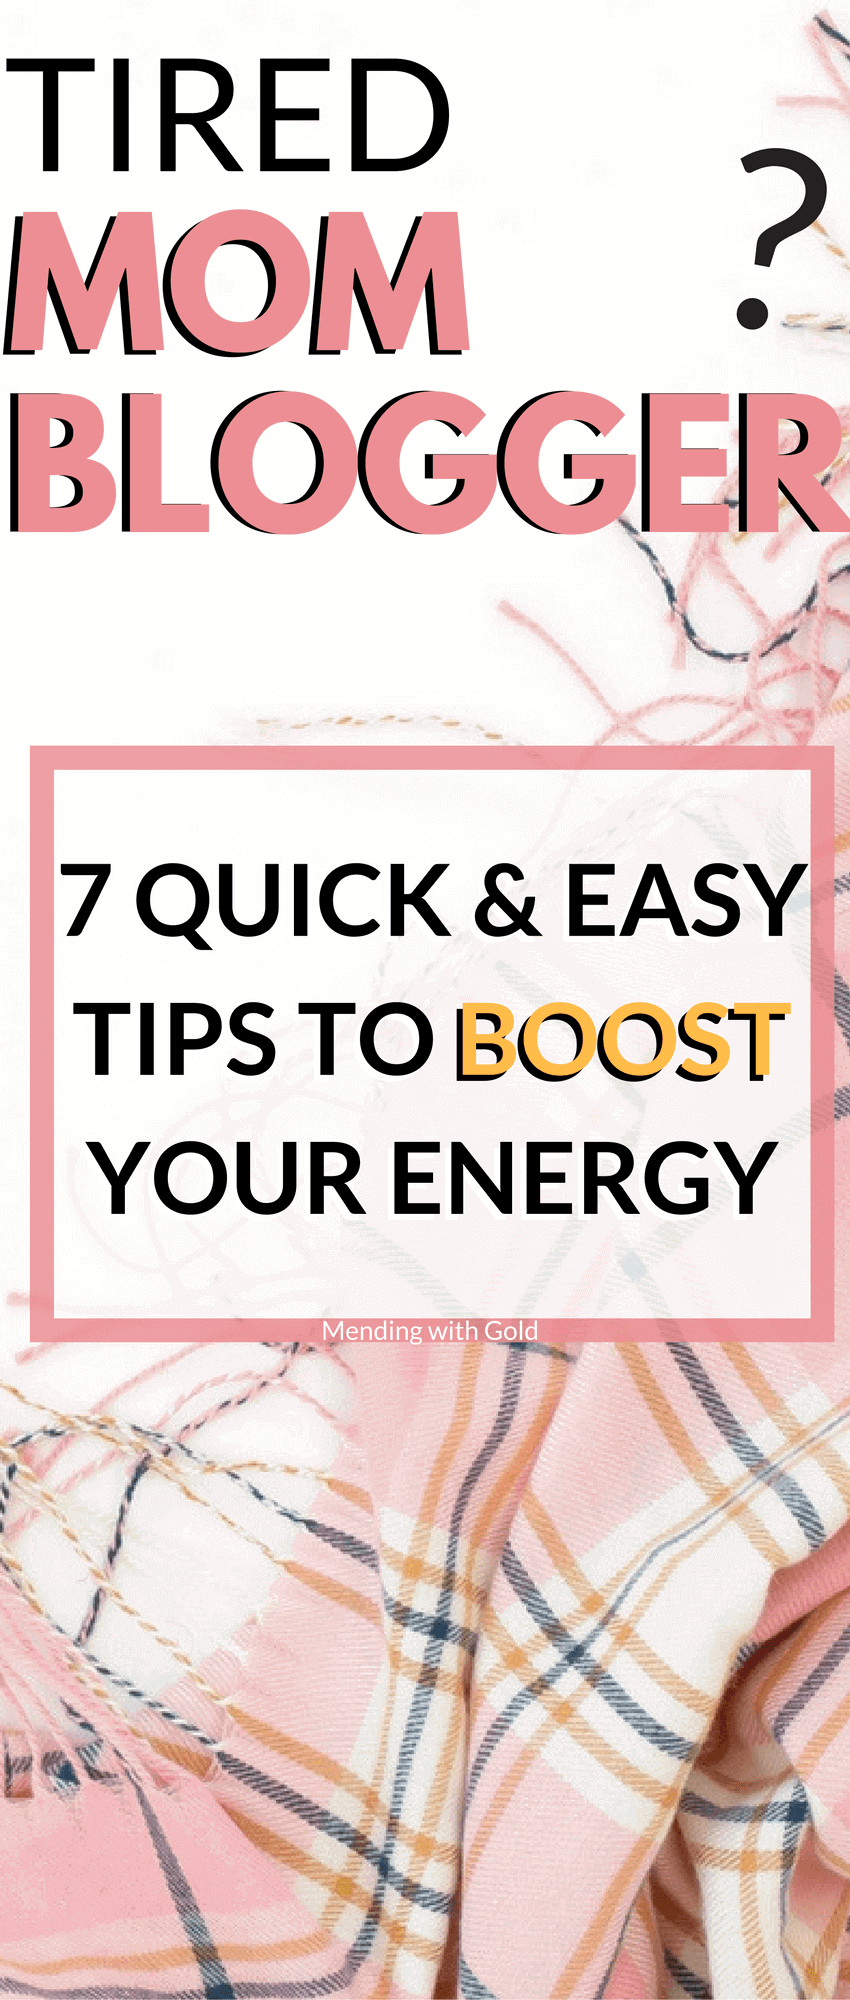 If you're a tired mom blogger you NEEEEDD these quick tips to boost your energy.